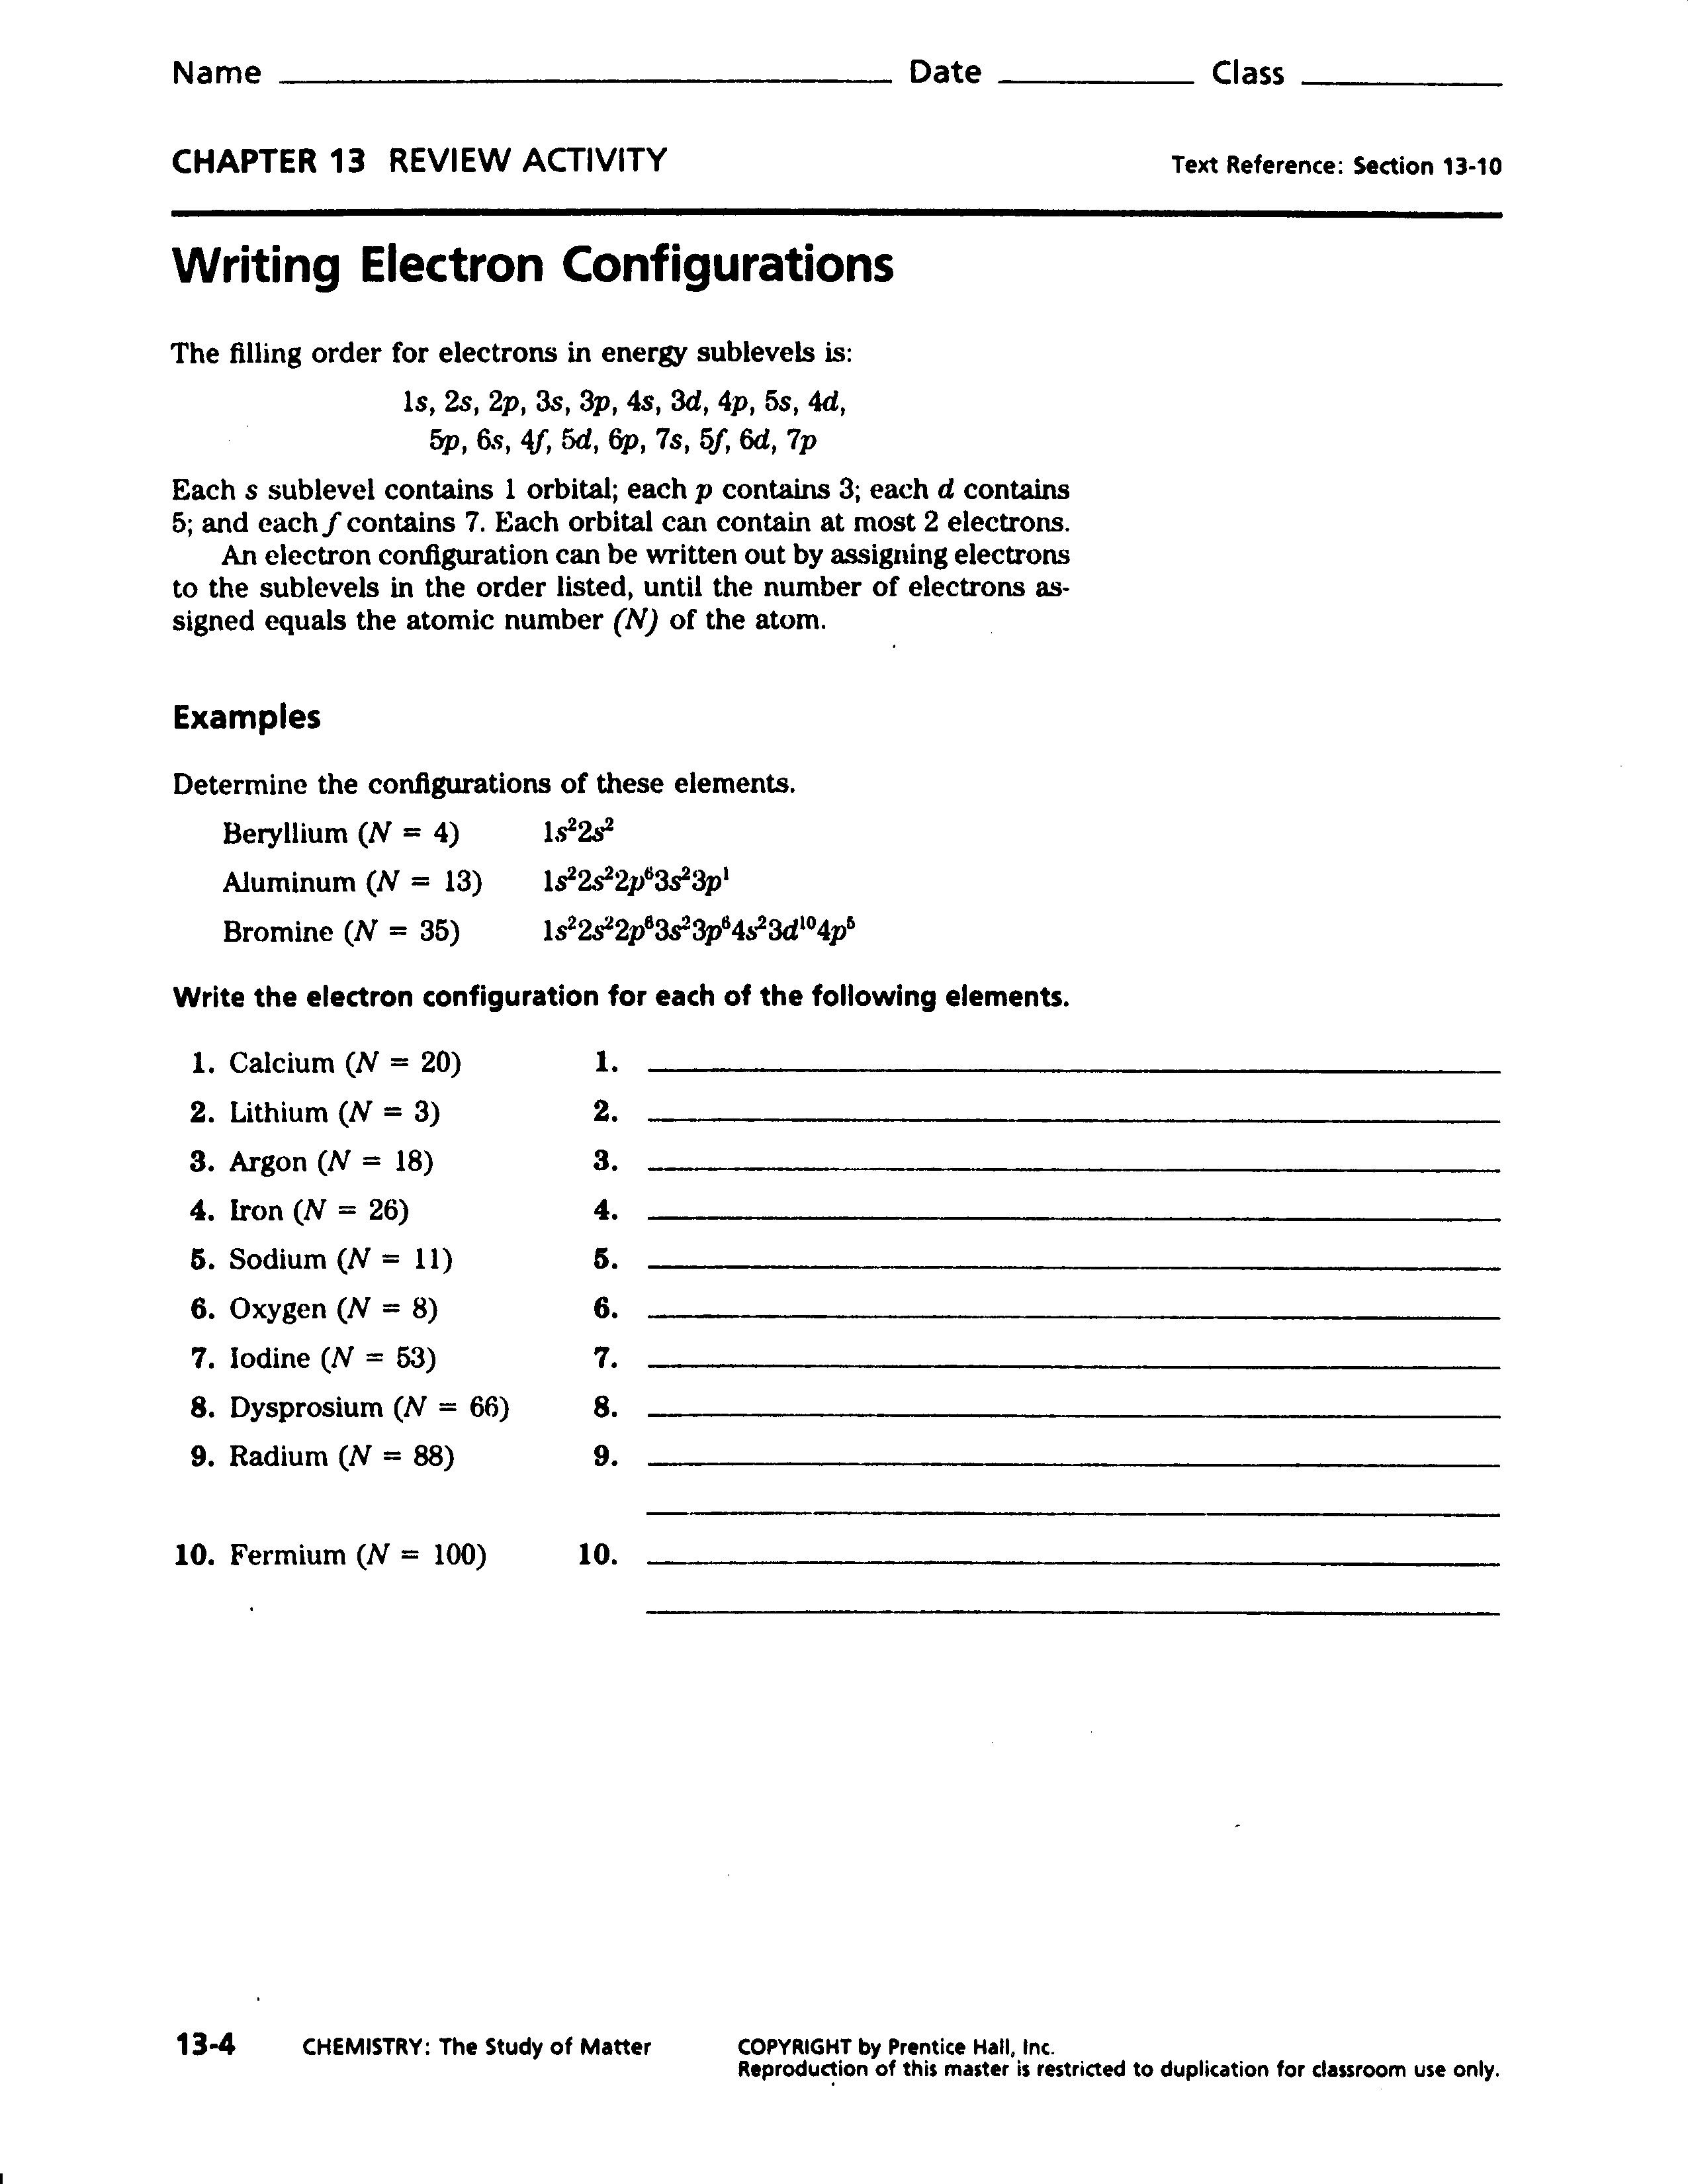 Electron Configuration Worksheet Answers Part A